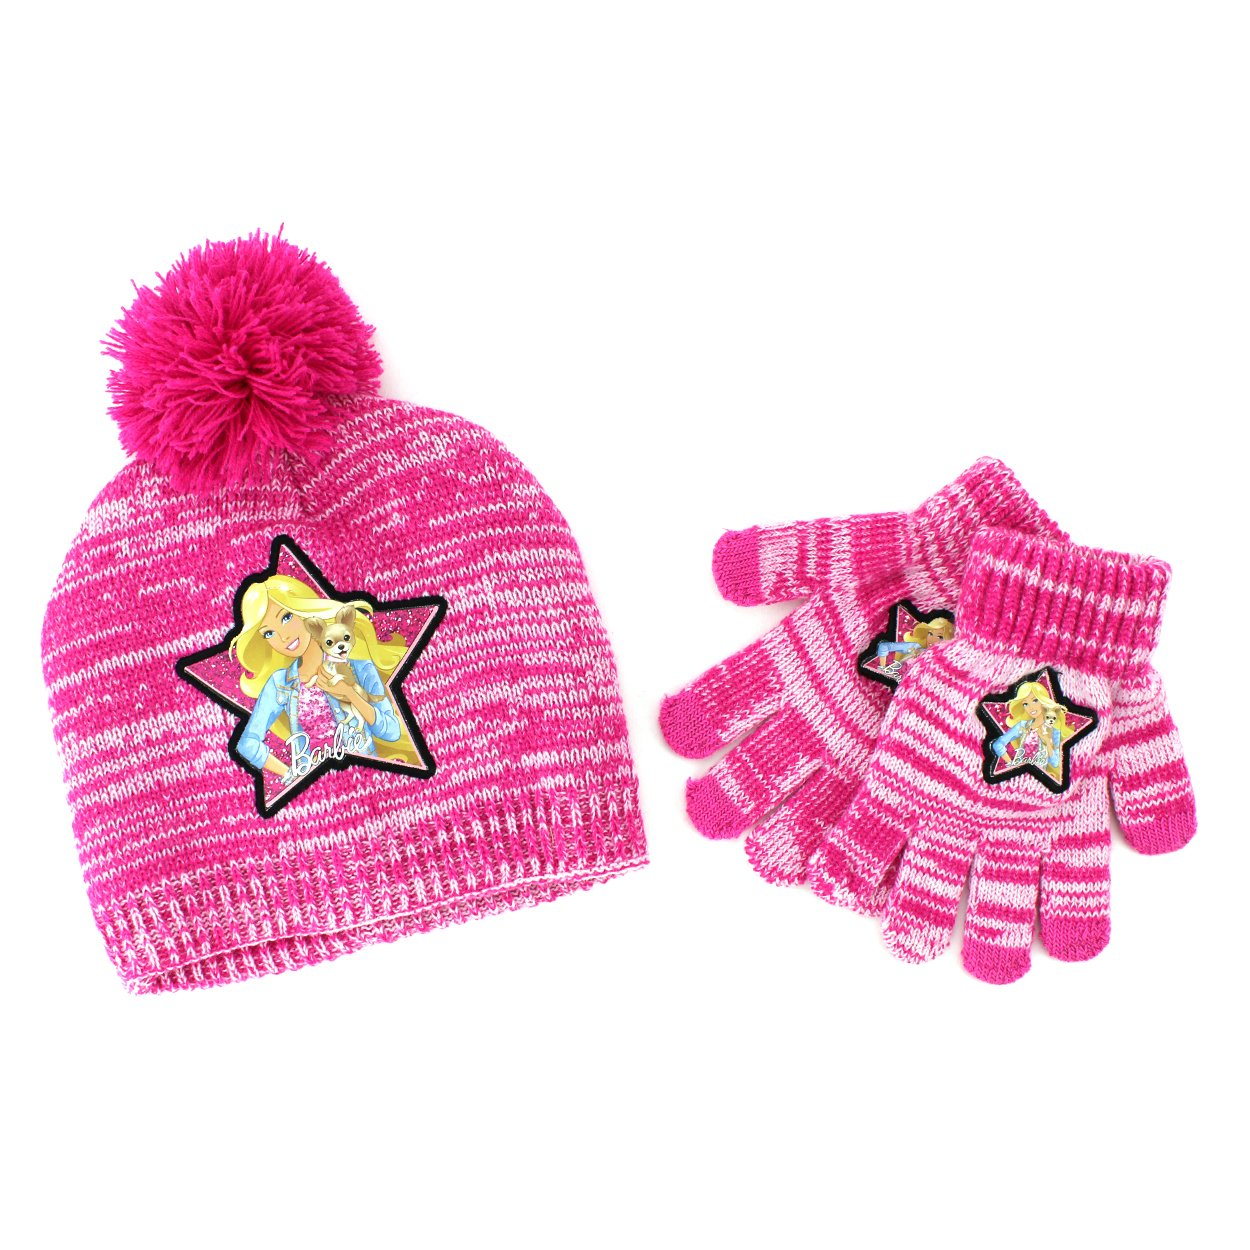 cd52d11eb0c Buy Disney Nickelodeon Mattel Girls Hat and Gloves Set (Pink Barbie) Online  at Low Prices in India - Amazon.in